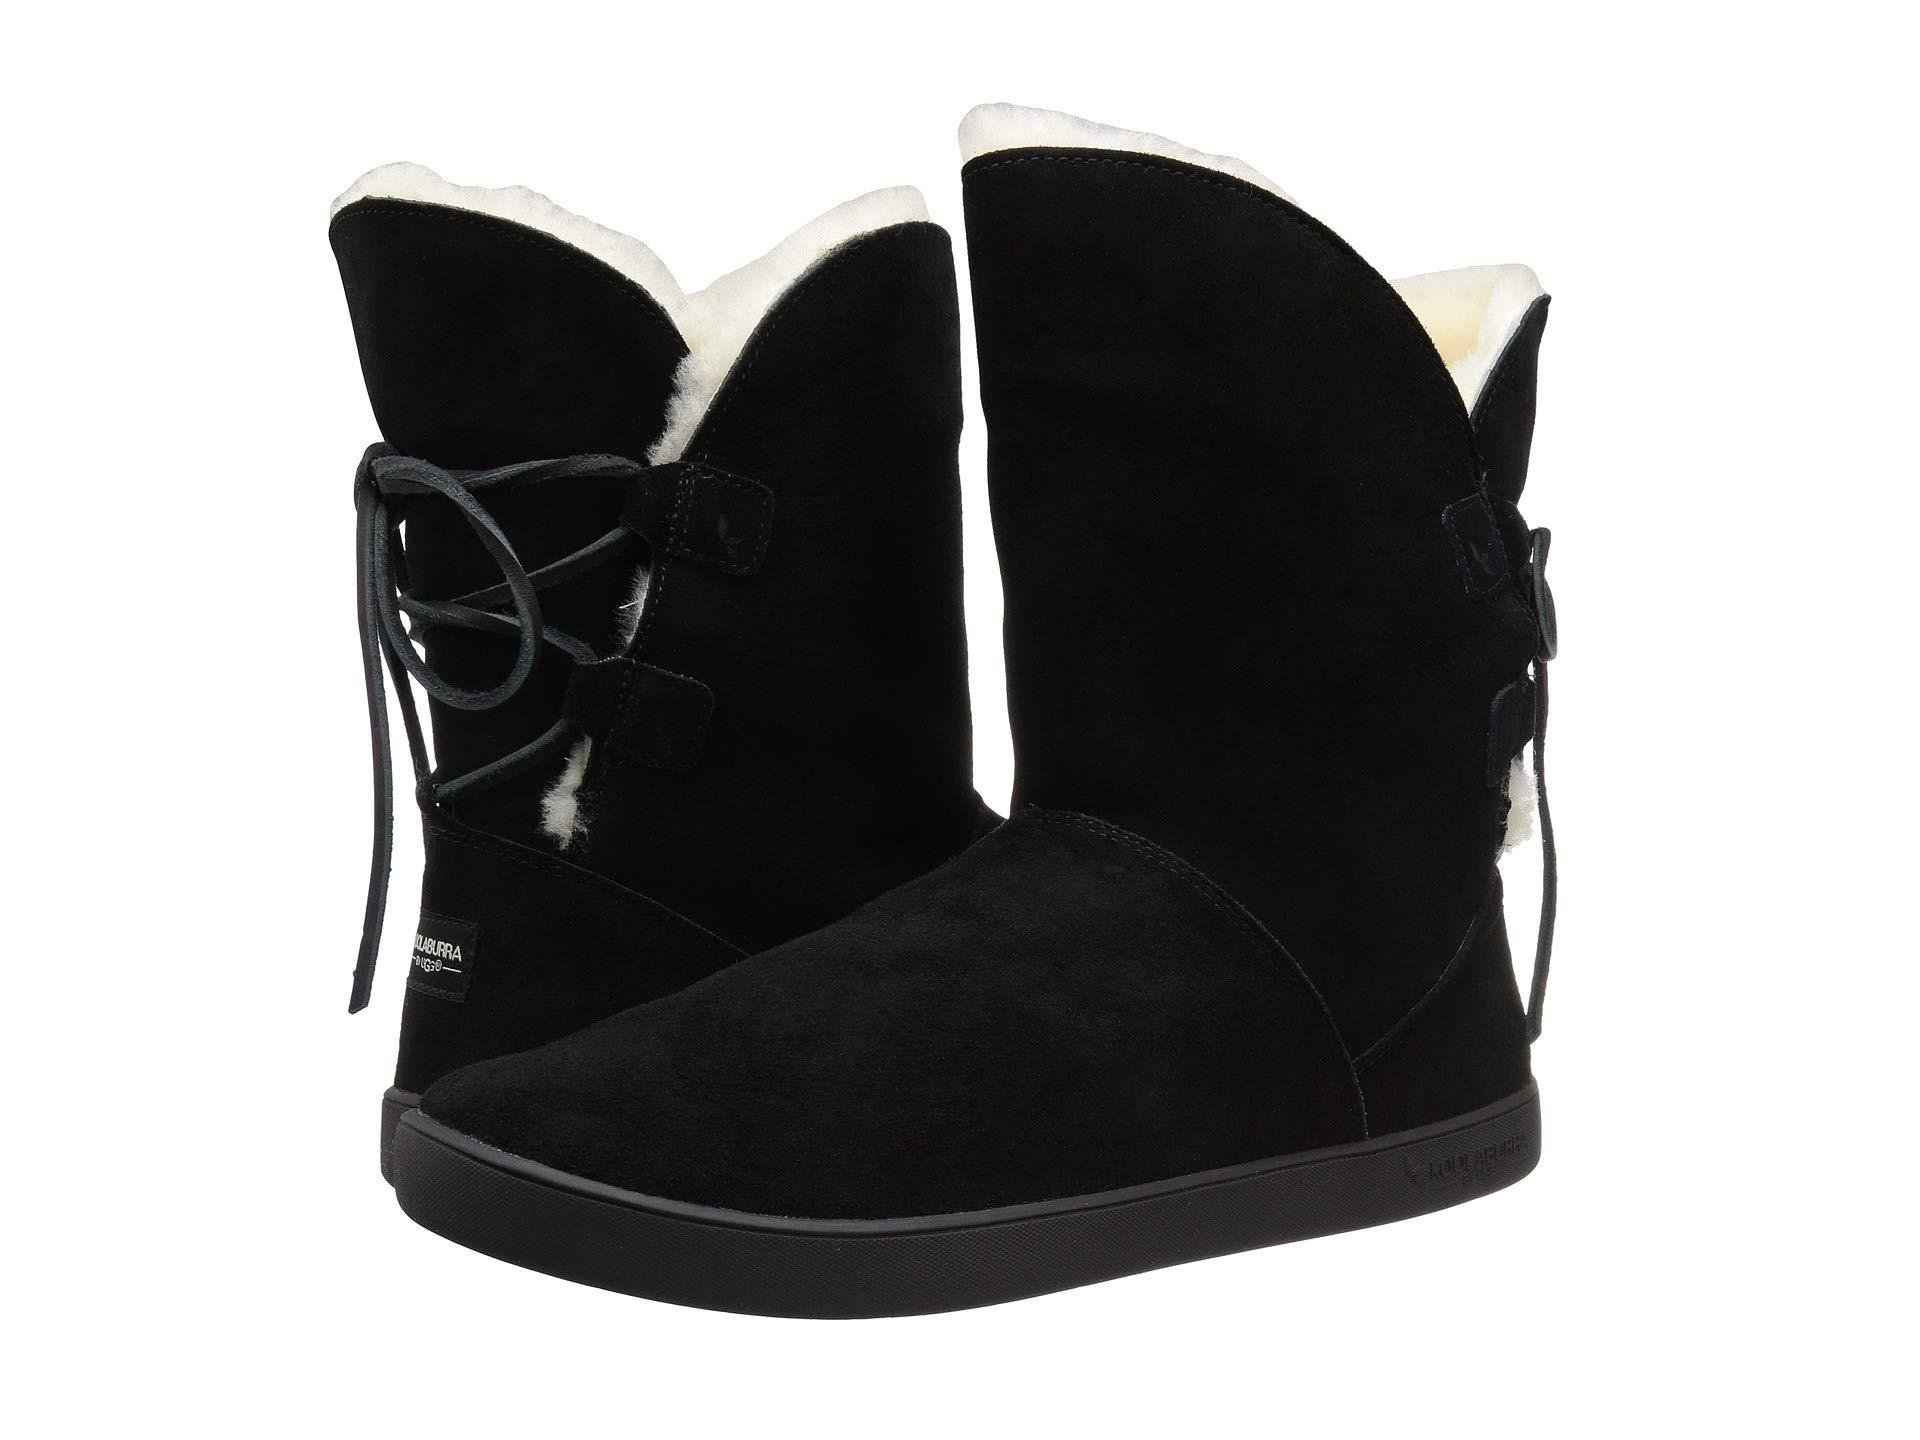 f0dac1b91b6 Lyst - UGG Shazi Short in Black